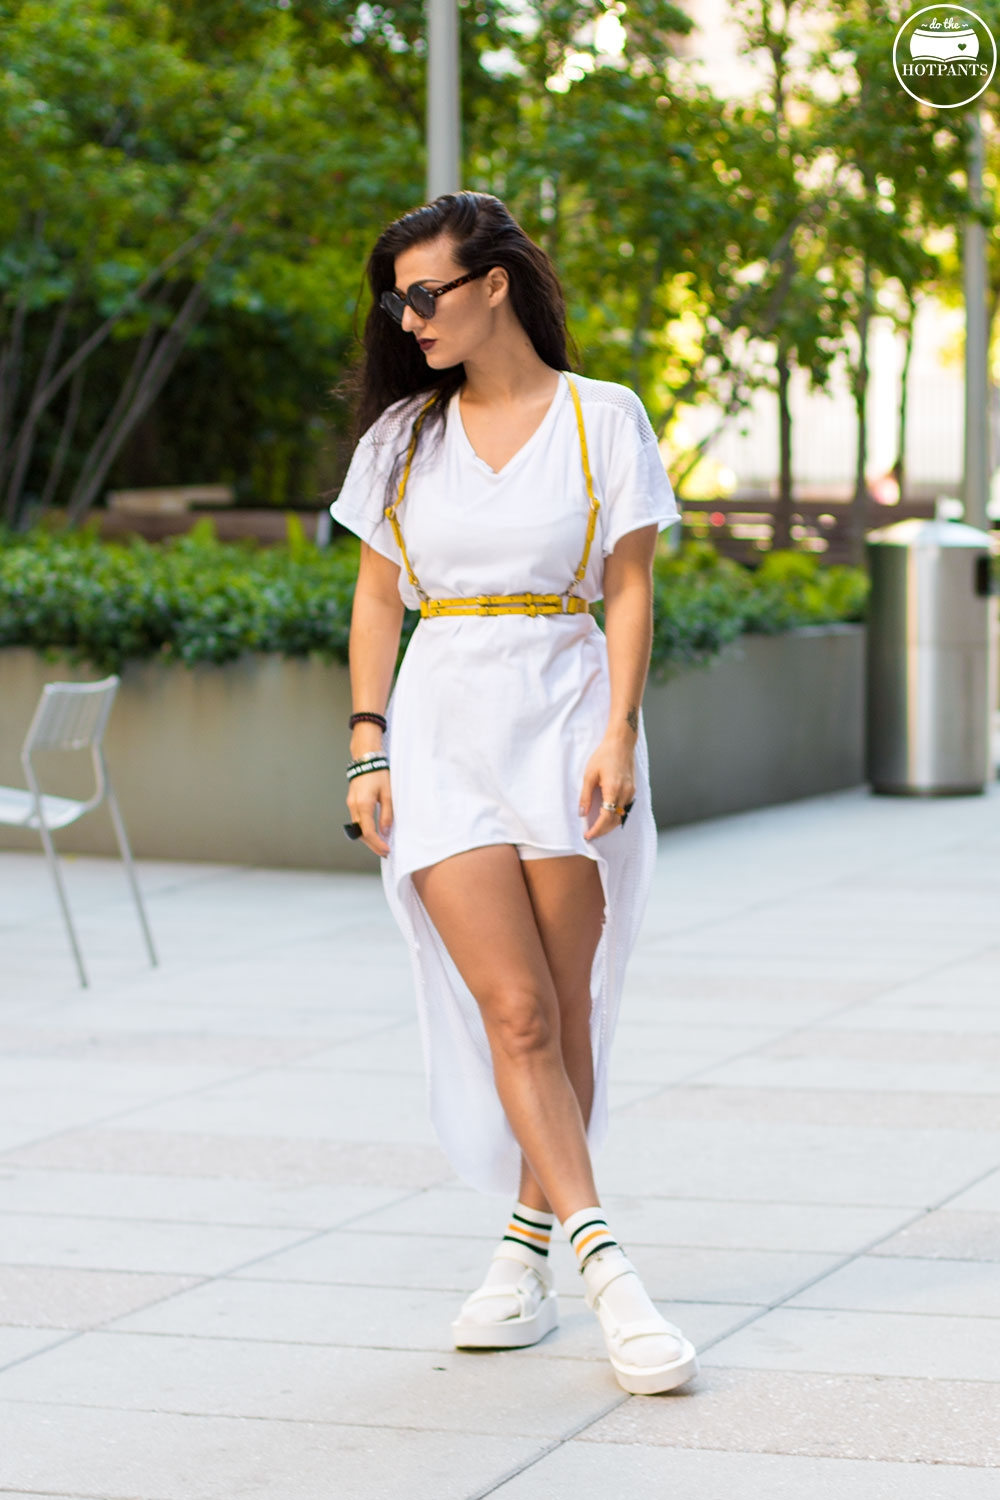 Do The Hotpants Dana Suchow Teva Sandals White Platform Sandals with Socks Fashion Ankle Socks IMG_8444